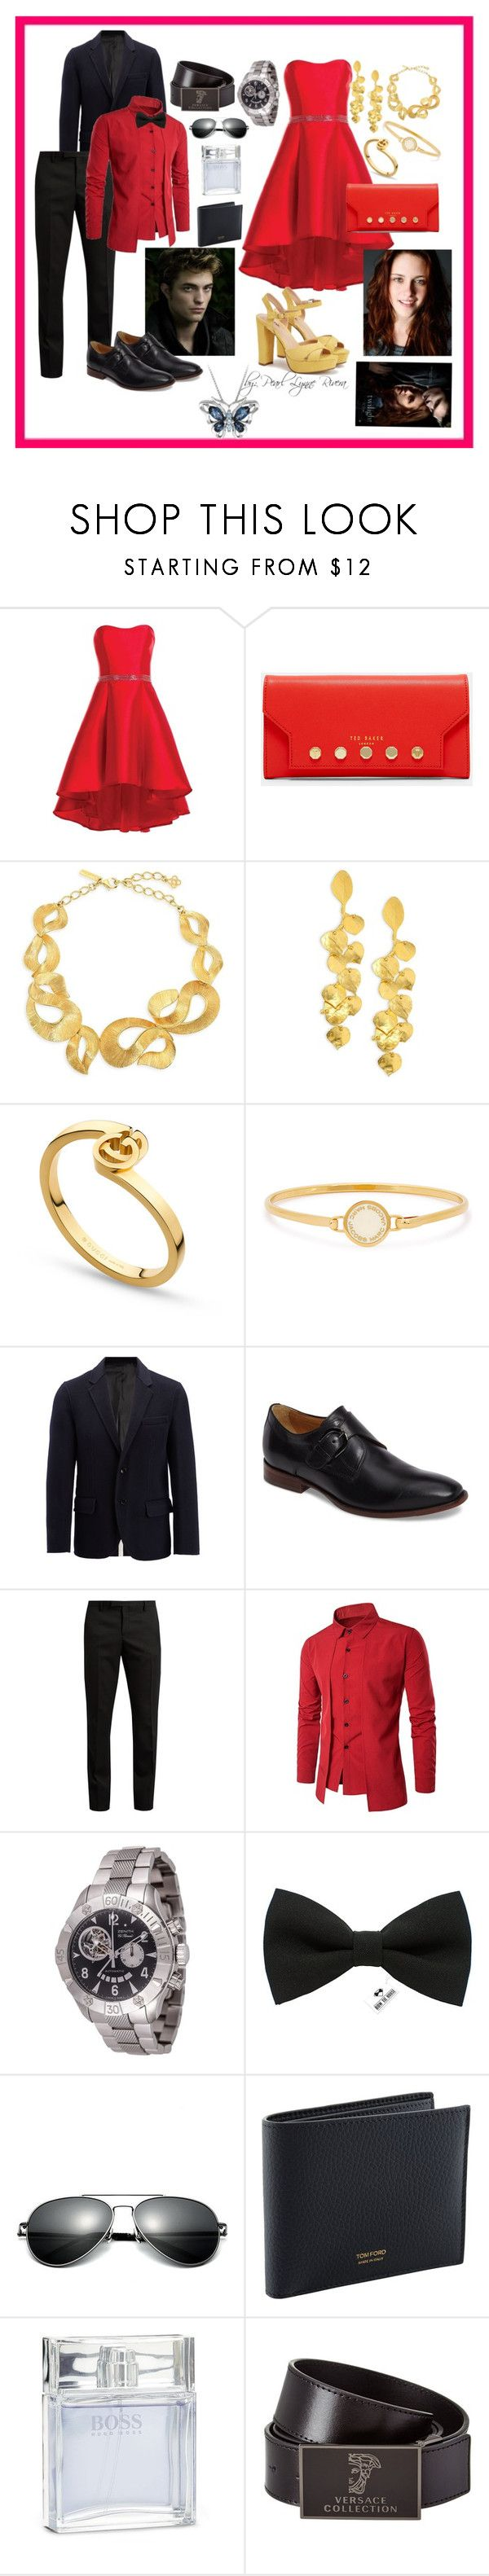 """Ynallection - Twilight fan"" by pearllynnerivera on Polyvore featuring Alyce Paris, Ted Baker, Oscar de la Renta, Kenneth Jay Lane, Gucci, Marc Jacobs, Joseph, Johnston & Murphy, Yves Saint Laurent and Zenith"